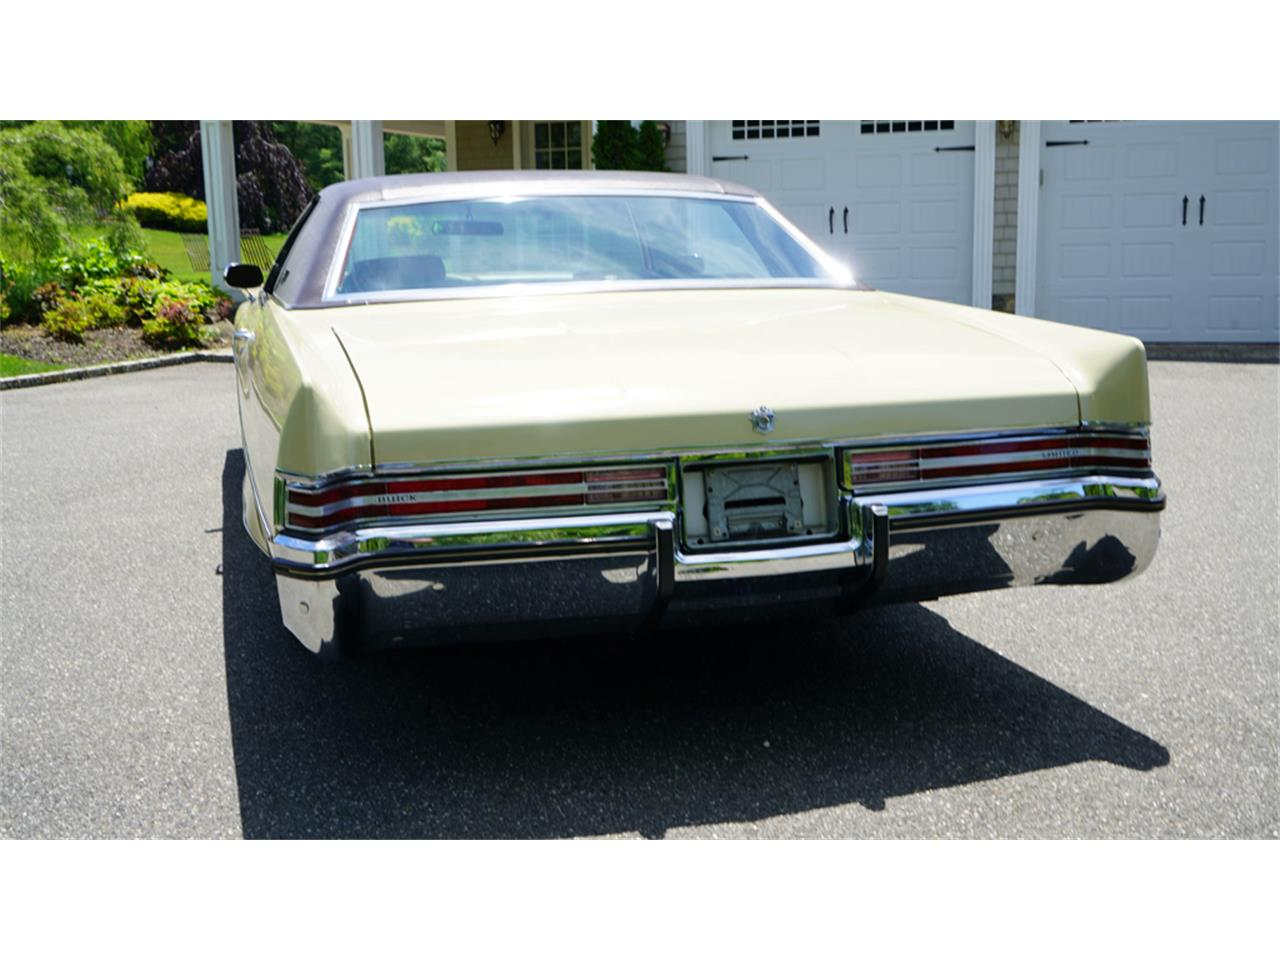 Large Picture of Classic 1972 Buick Electra 225 located in New York - $32,500.00 - QAJE